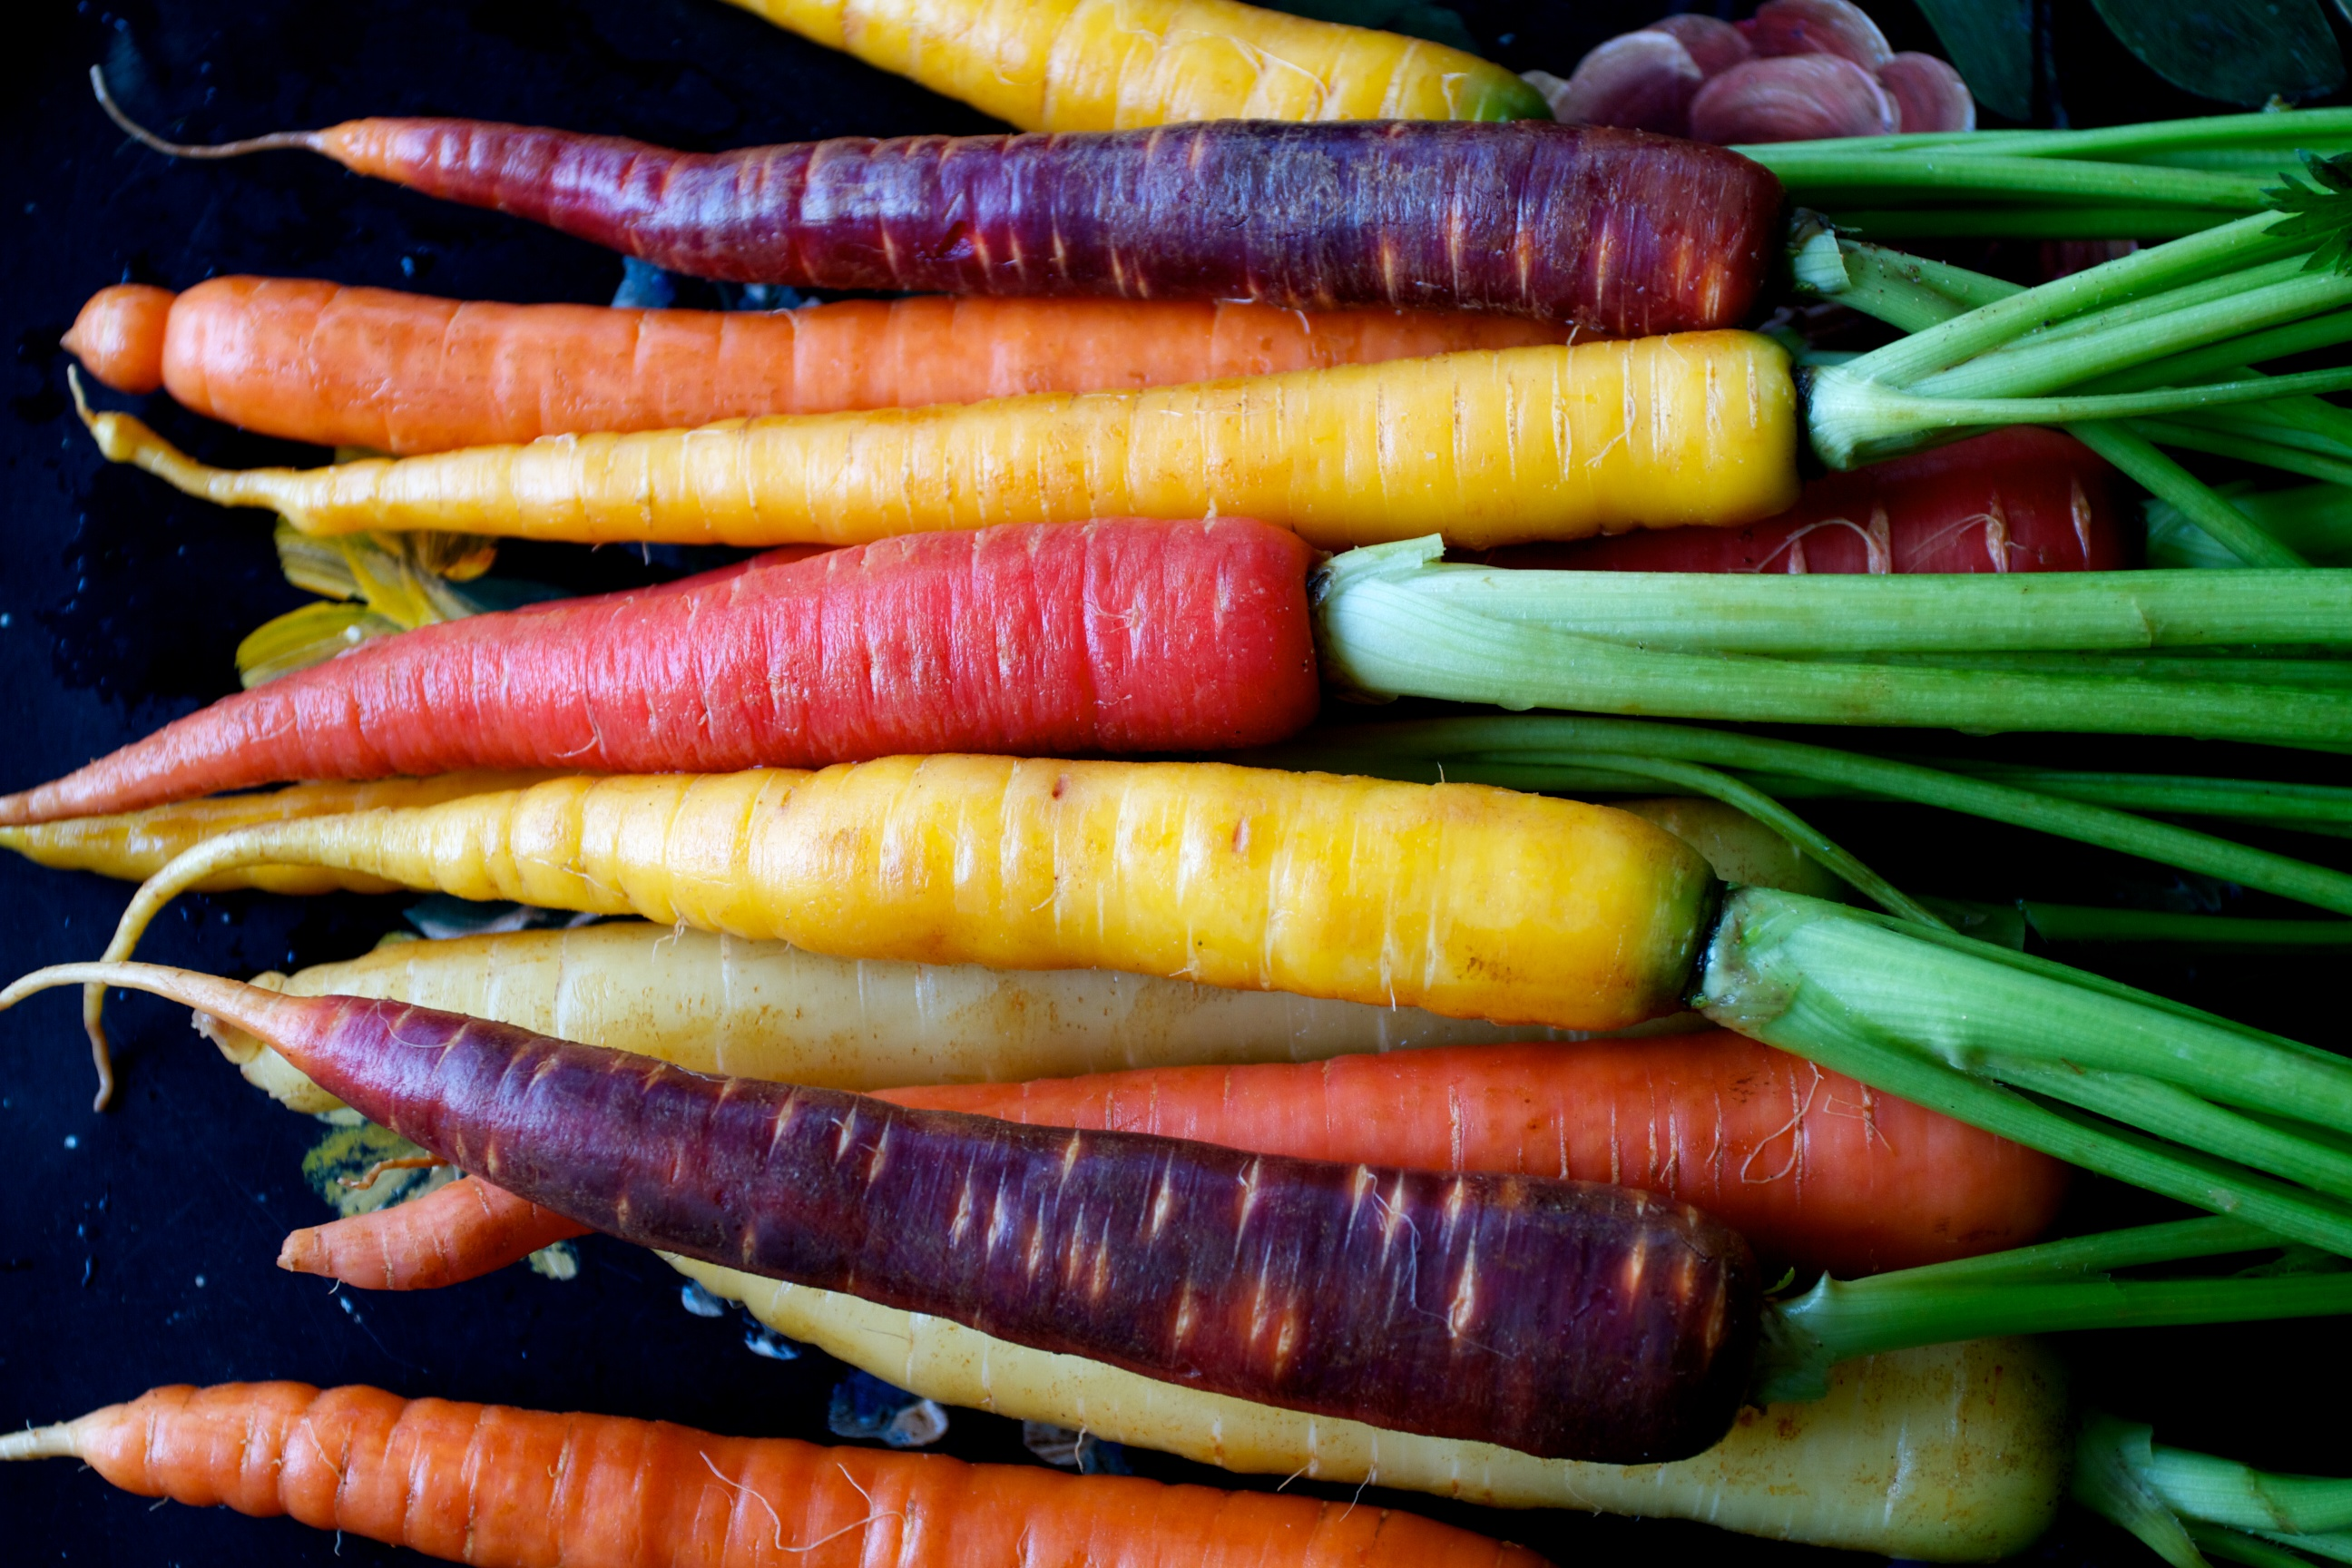 Natural Color Of Carrots